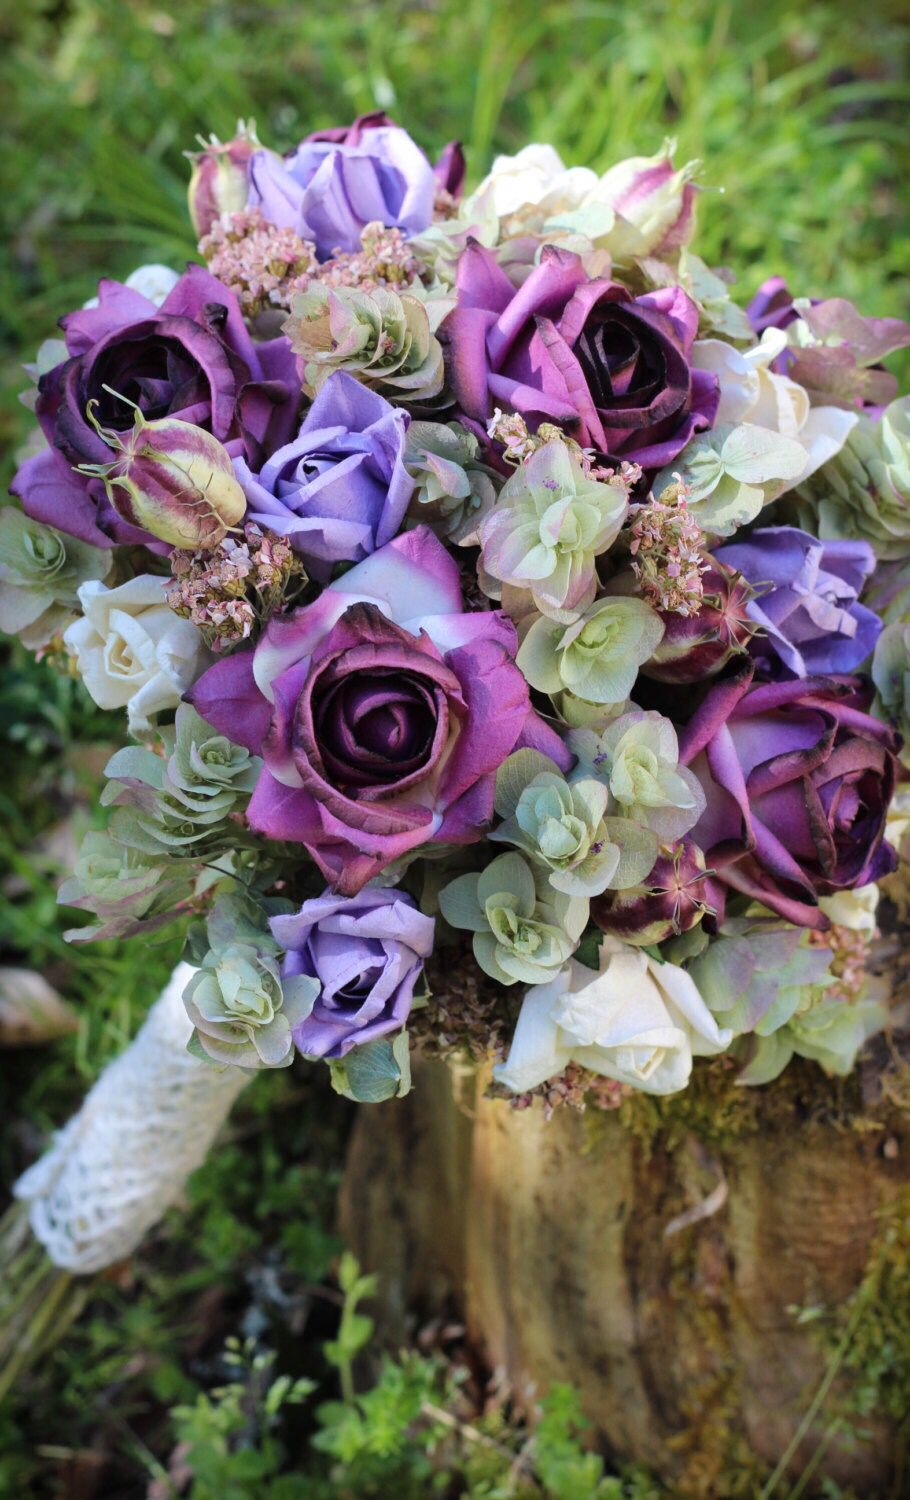 Gorgeous purple dried flower bouquet dried flowers are perfect for gorgeous purple dried flower bouquet dried flowers are perfect for weddings or mothers day gifts izmirmasajfo Images